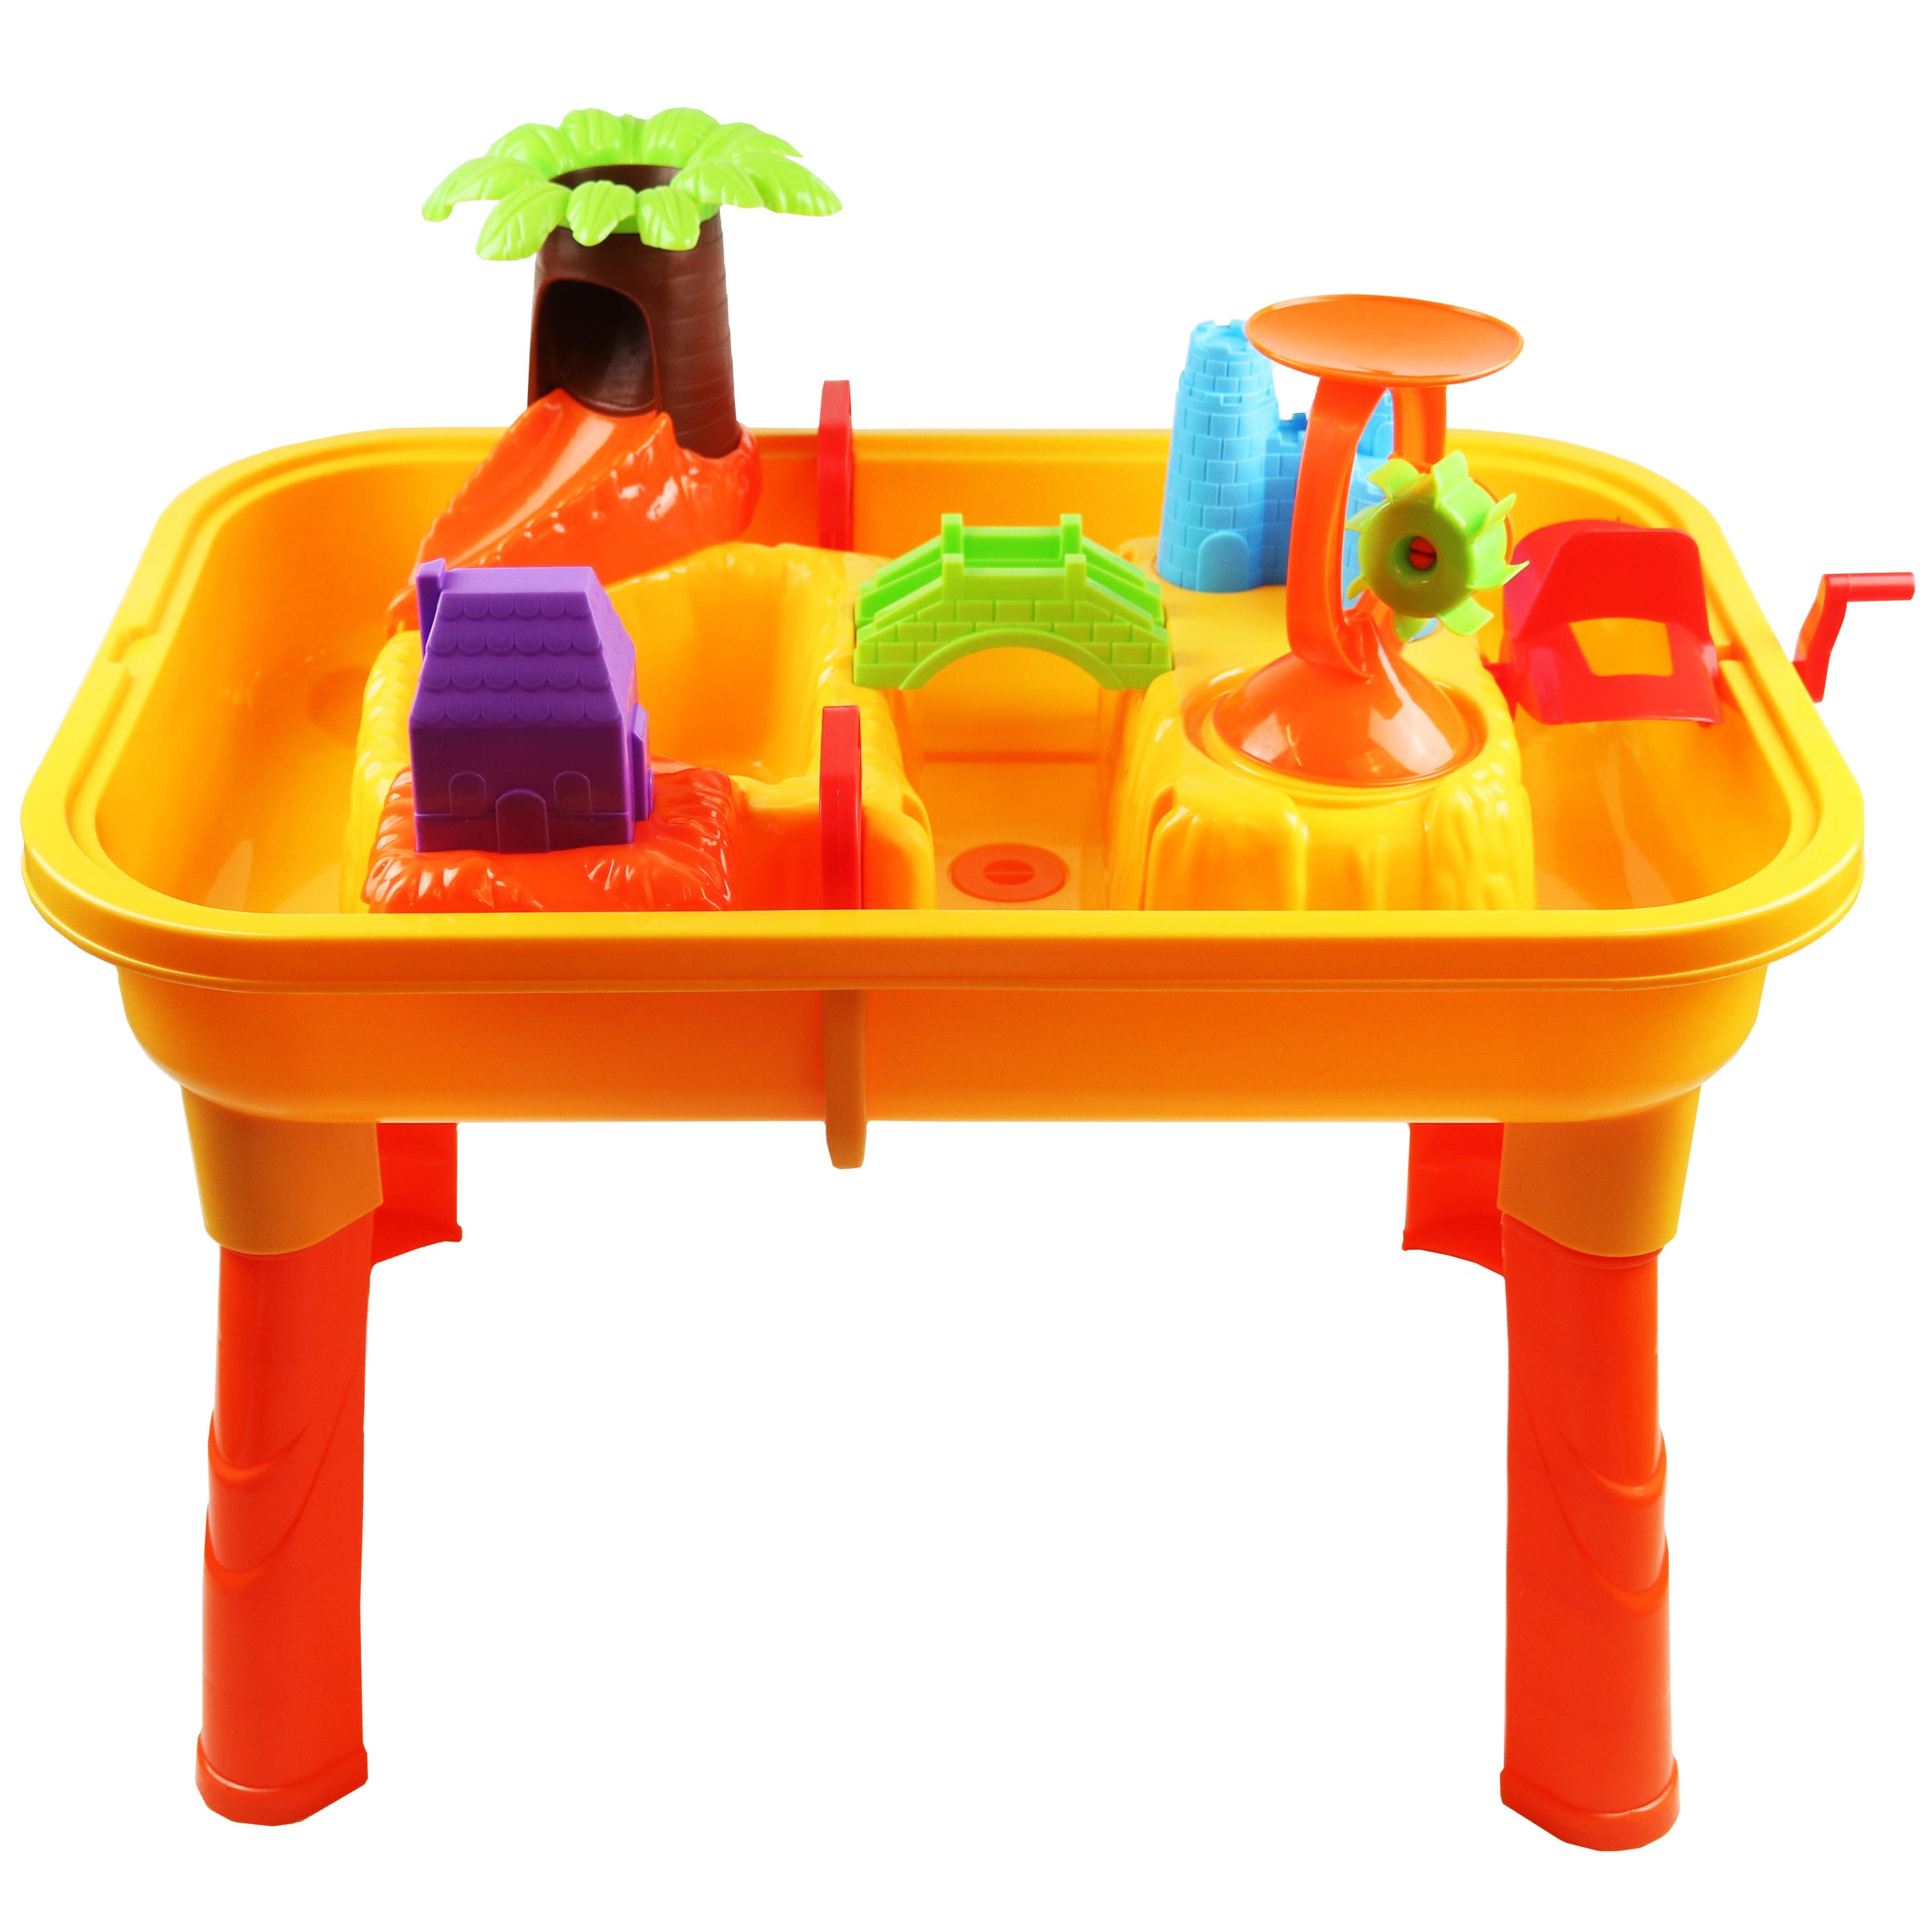 Toys For Water : Toddlers kids childrens sand water table toy with